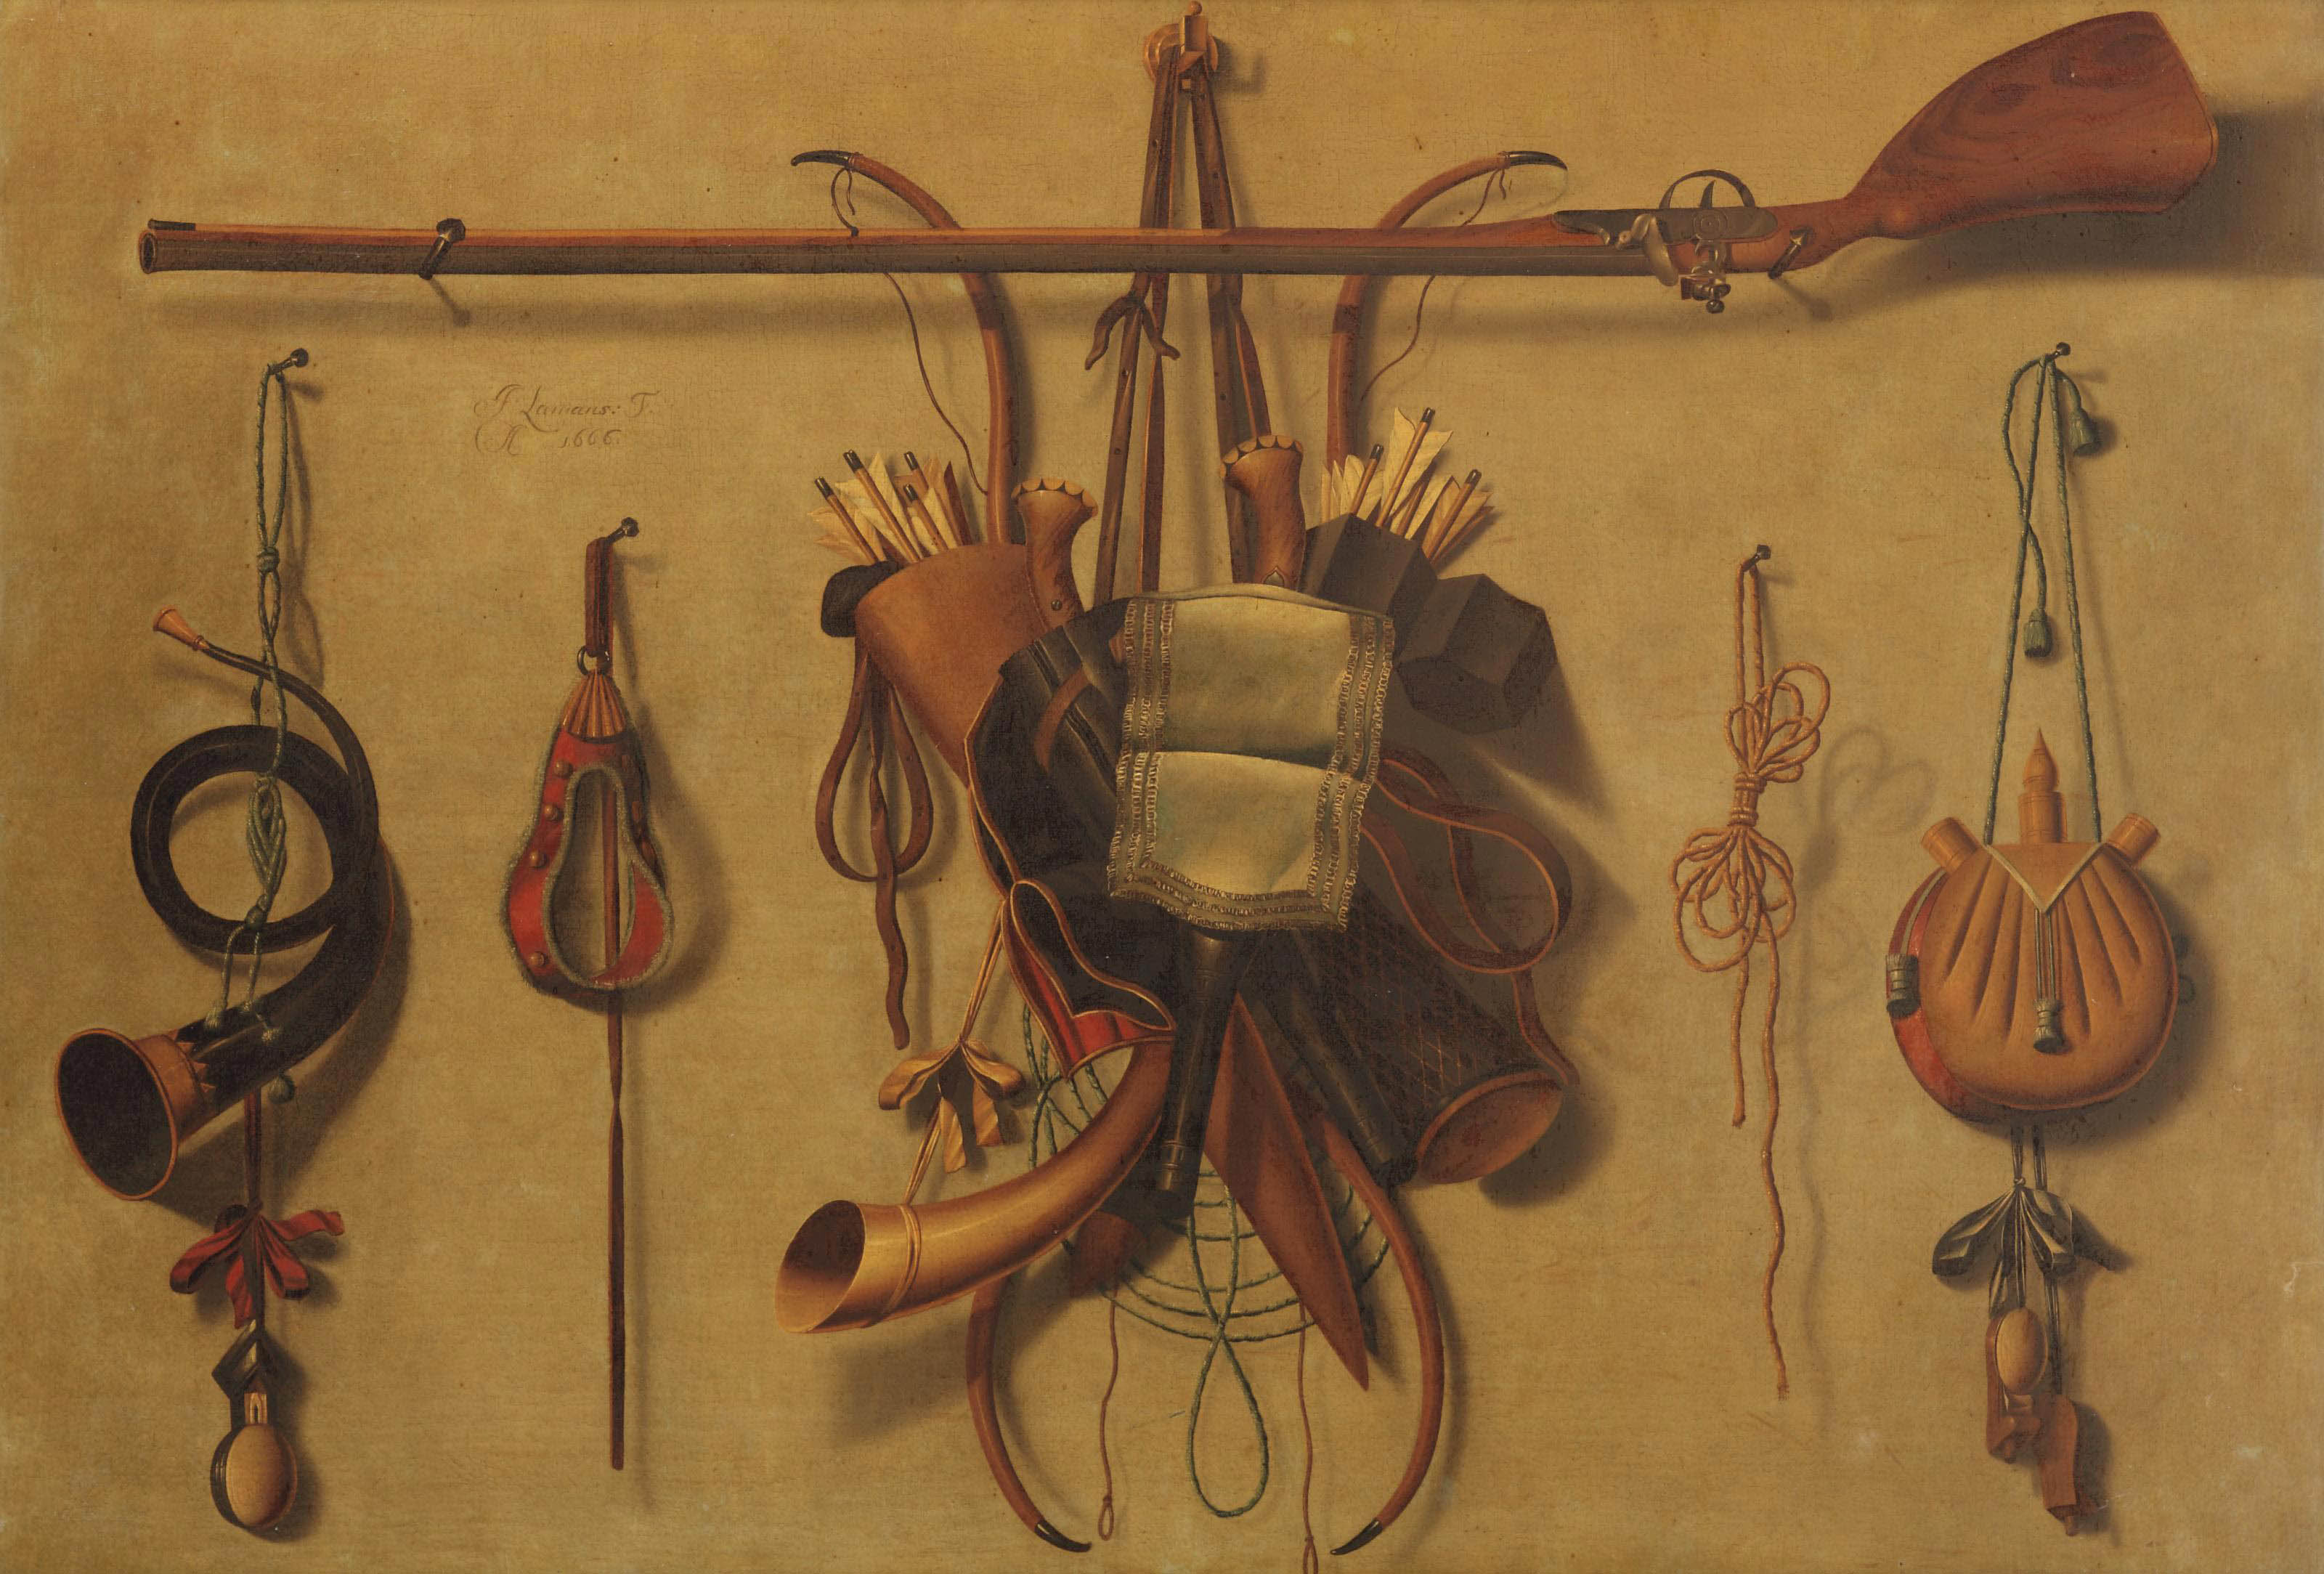 A 'trompe l'oeil' still life with hunting paraphernalia hanging on a wall